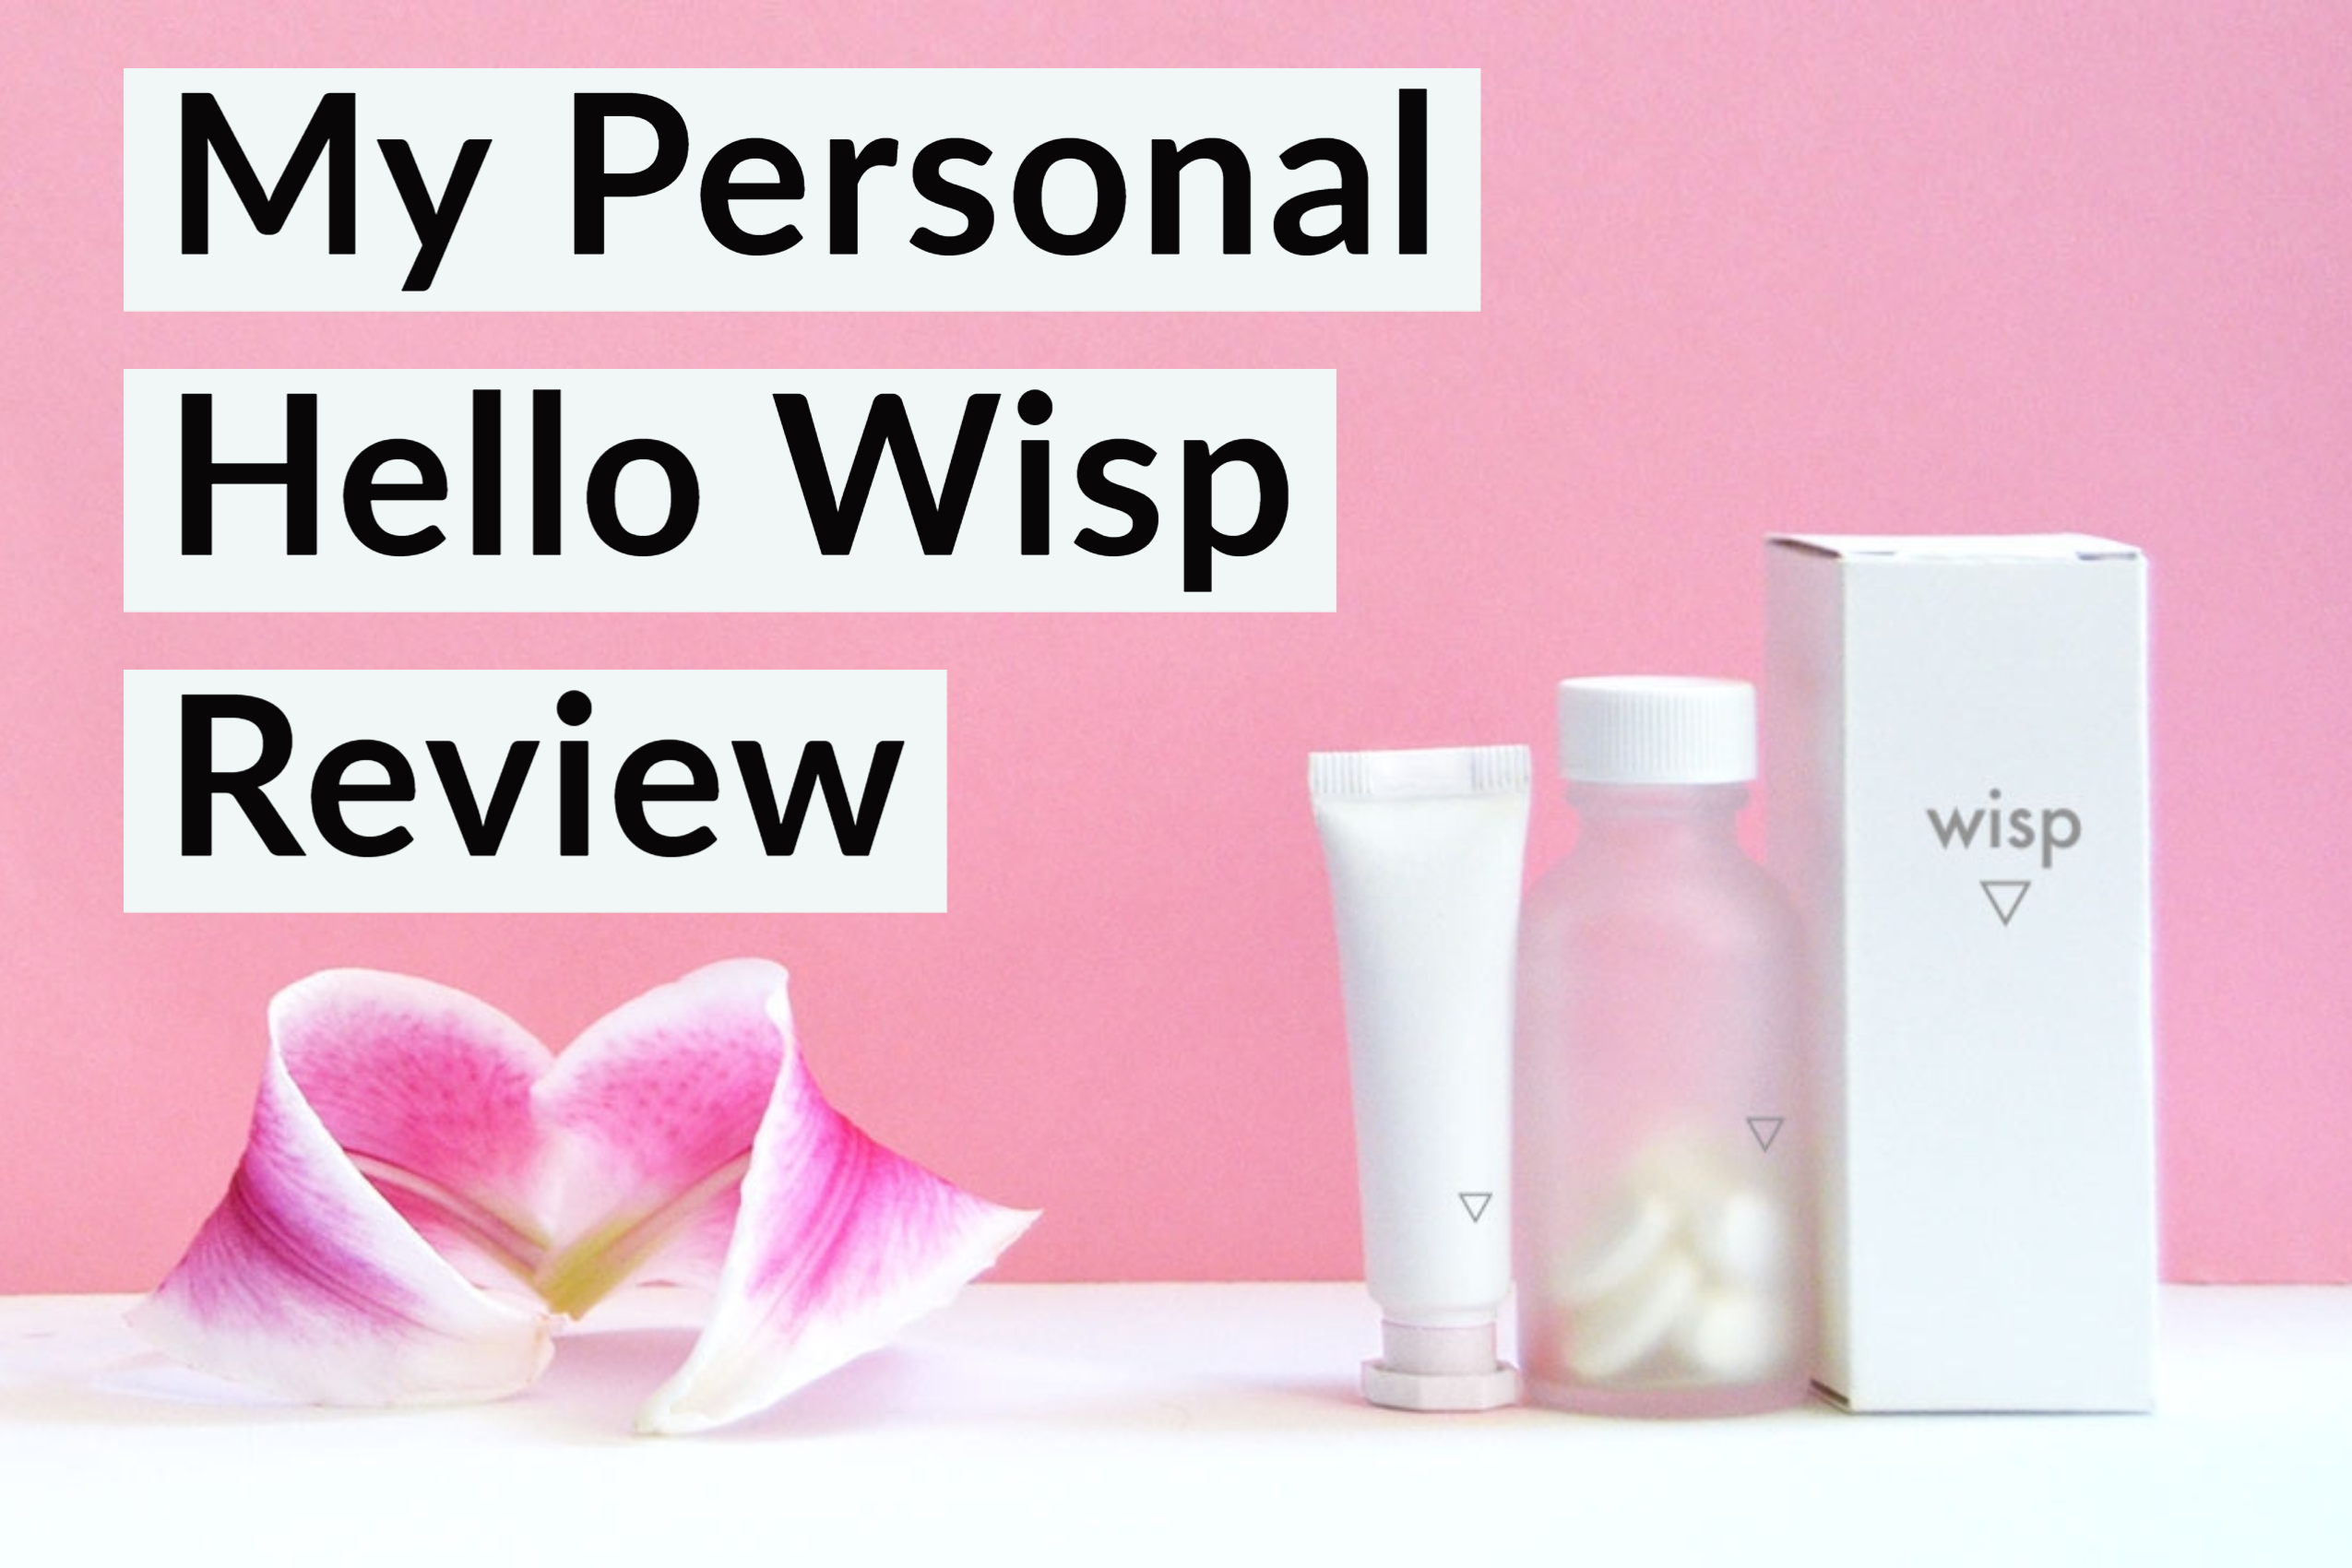 featured image - hello wisp review article